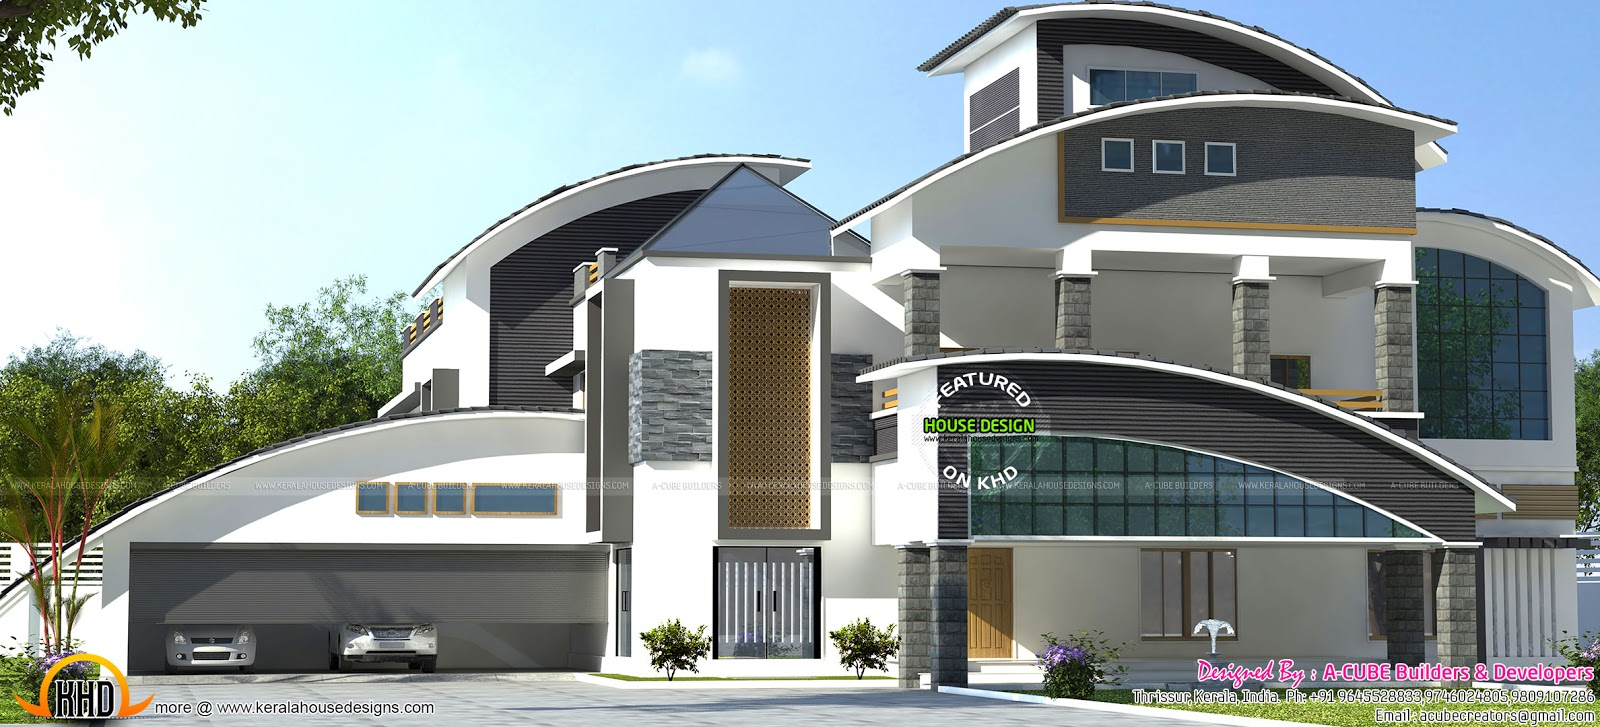 Gandul luxury curved roof home architecture for Curved roof house designs